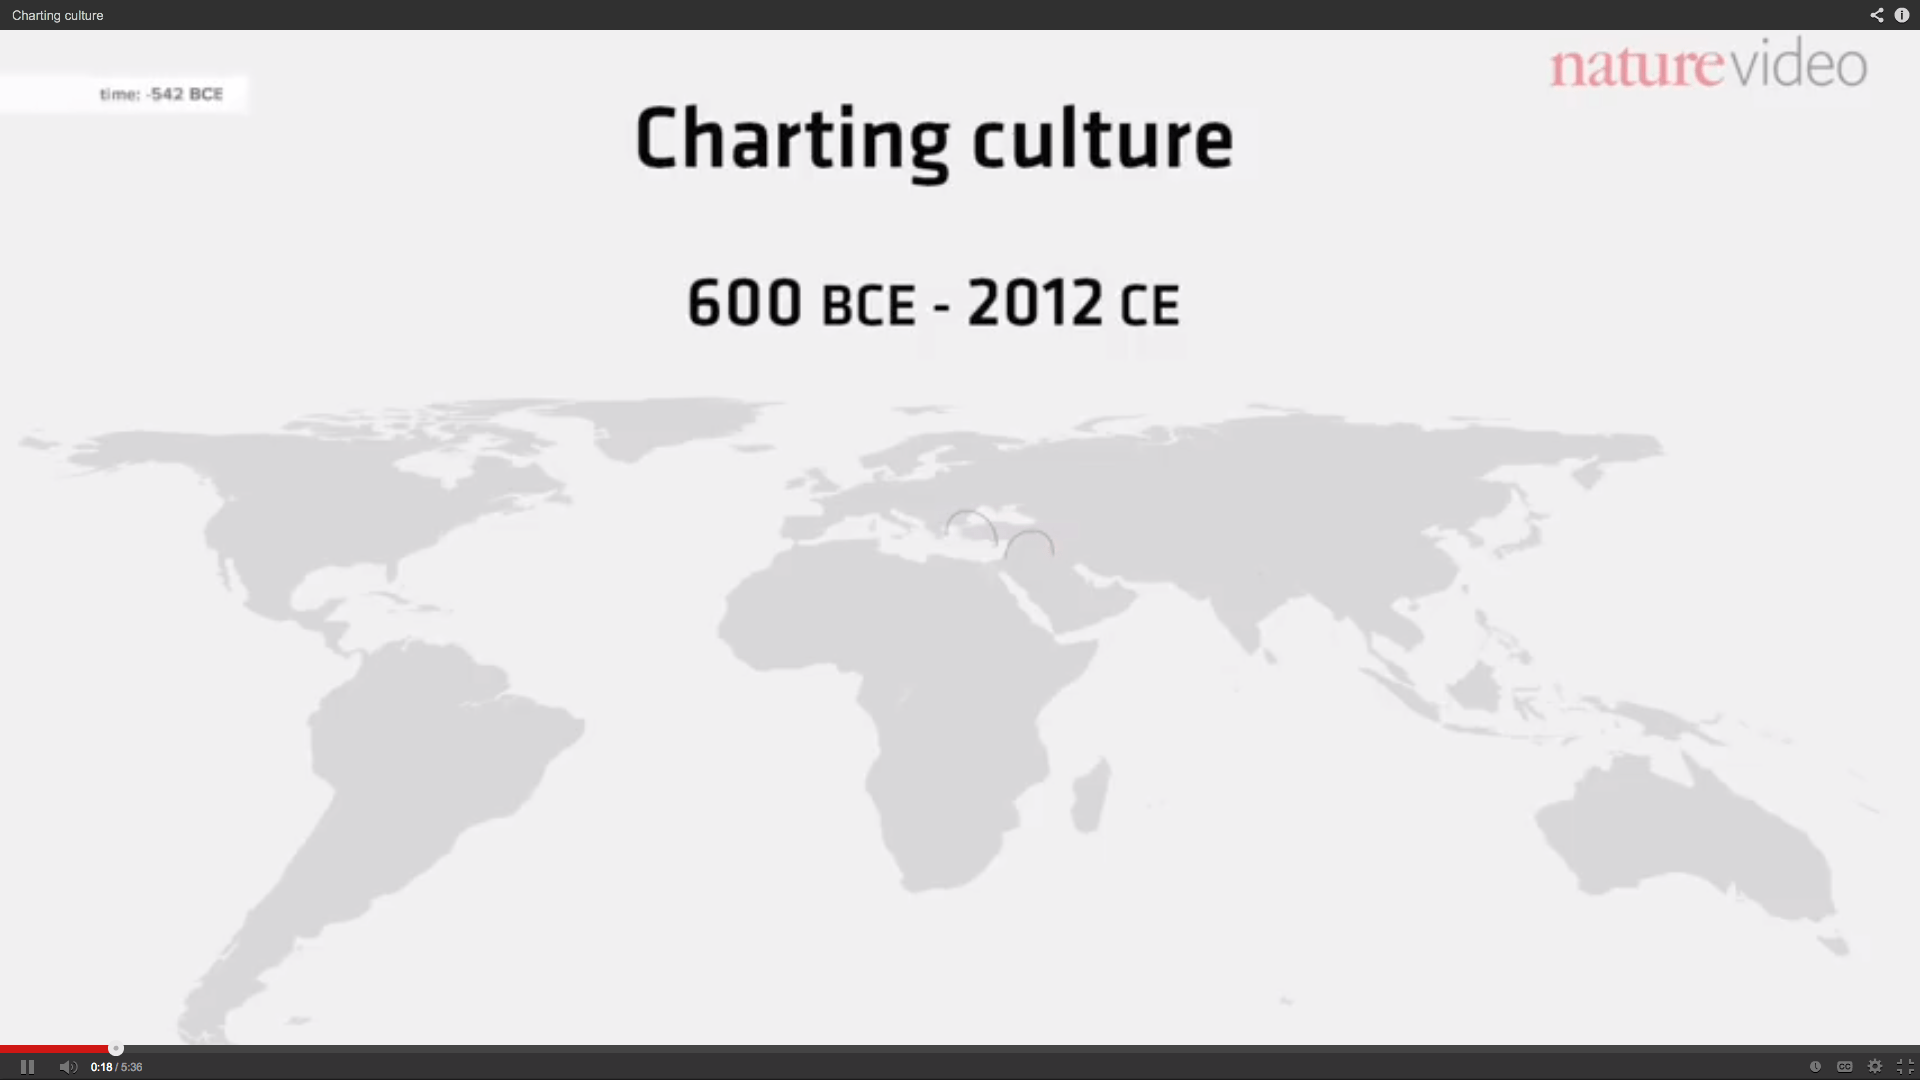 VIDEO via FreeBase: Charting Culture by Mapping Migration